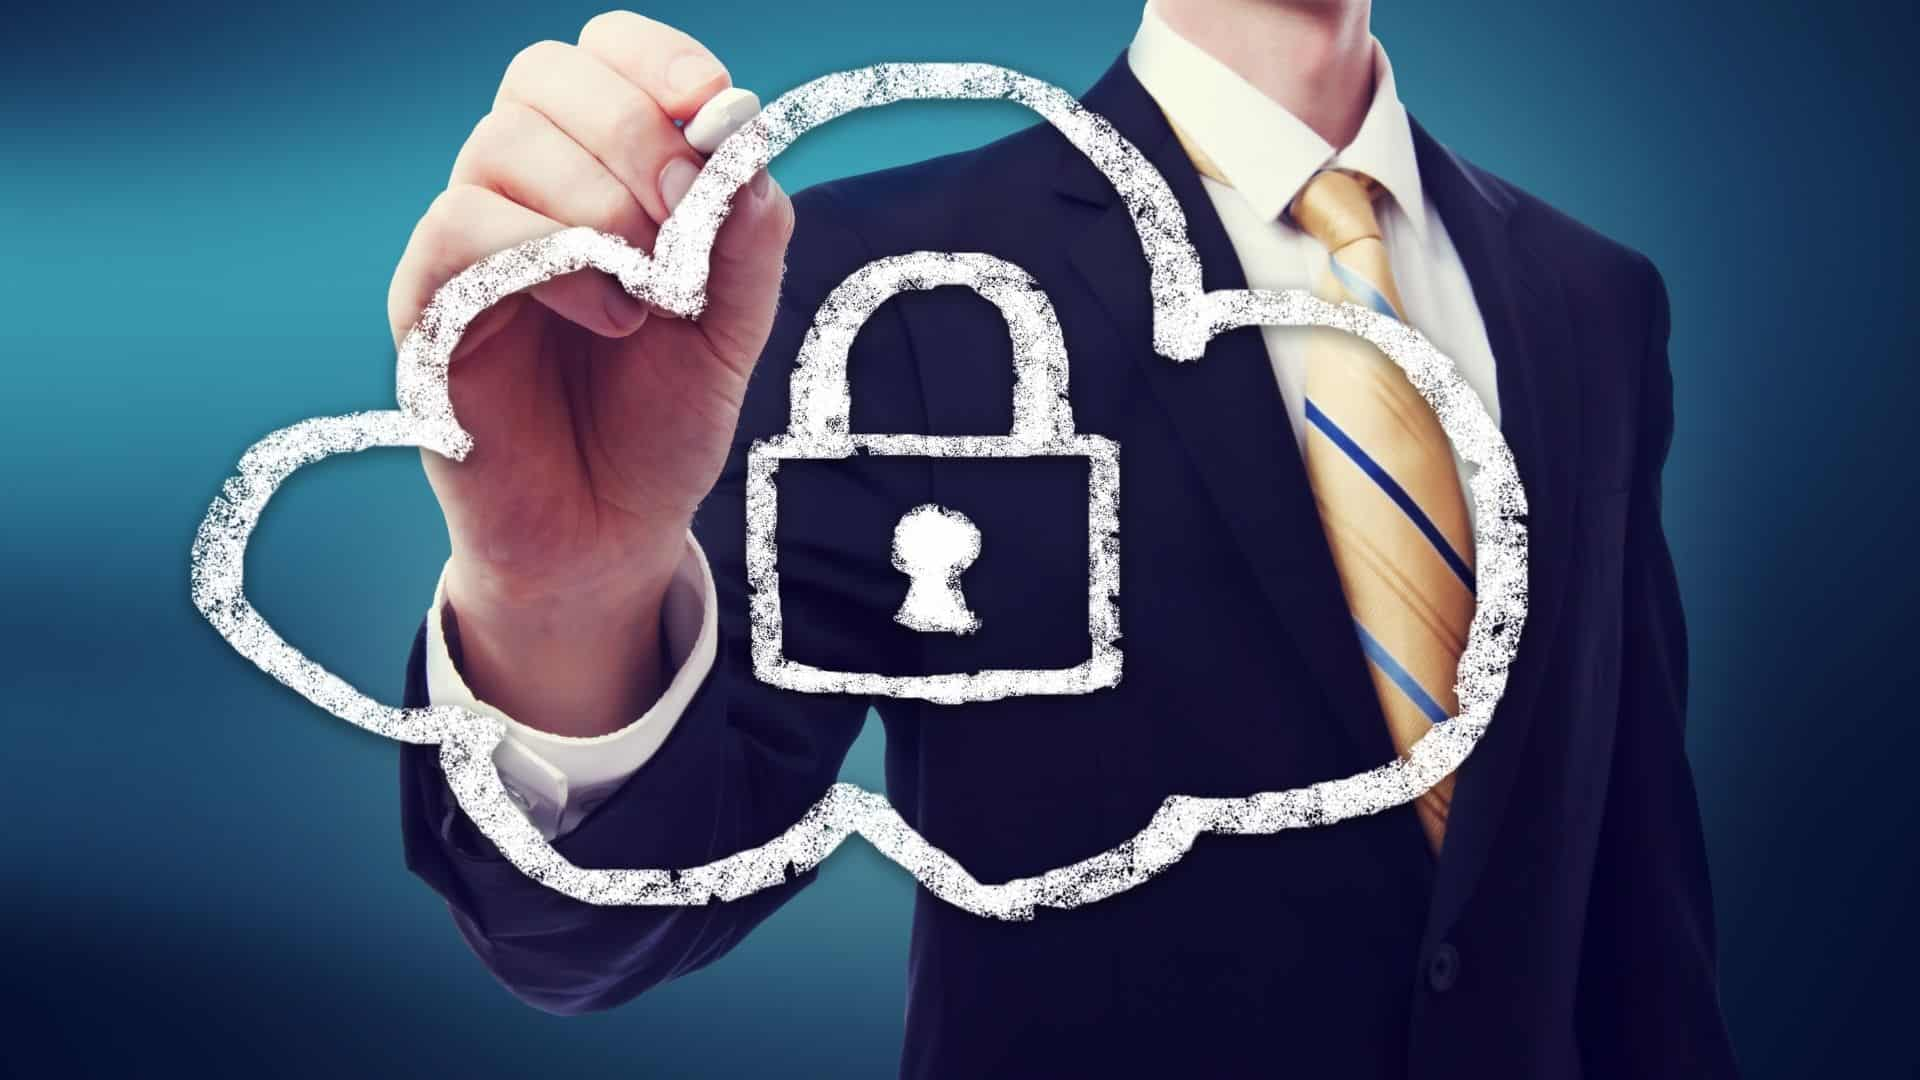 How to Secure Your Information in The Cloud